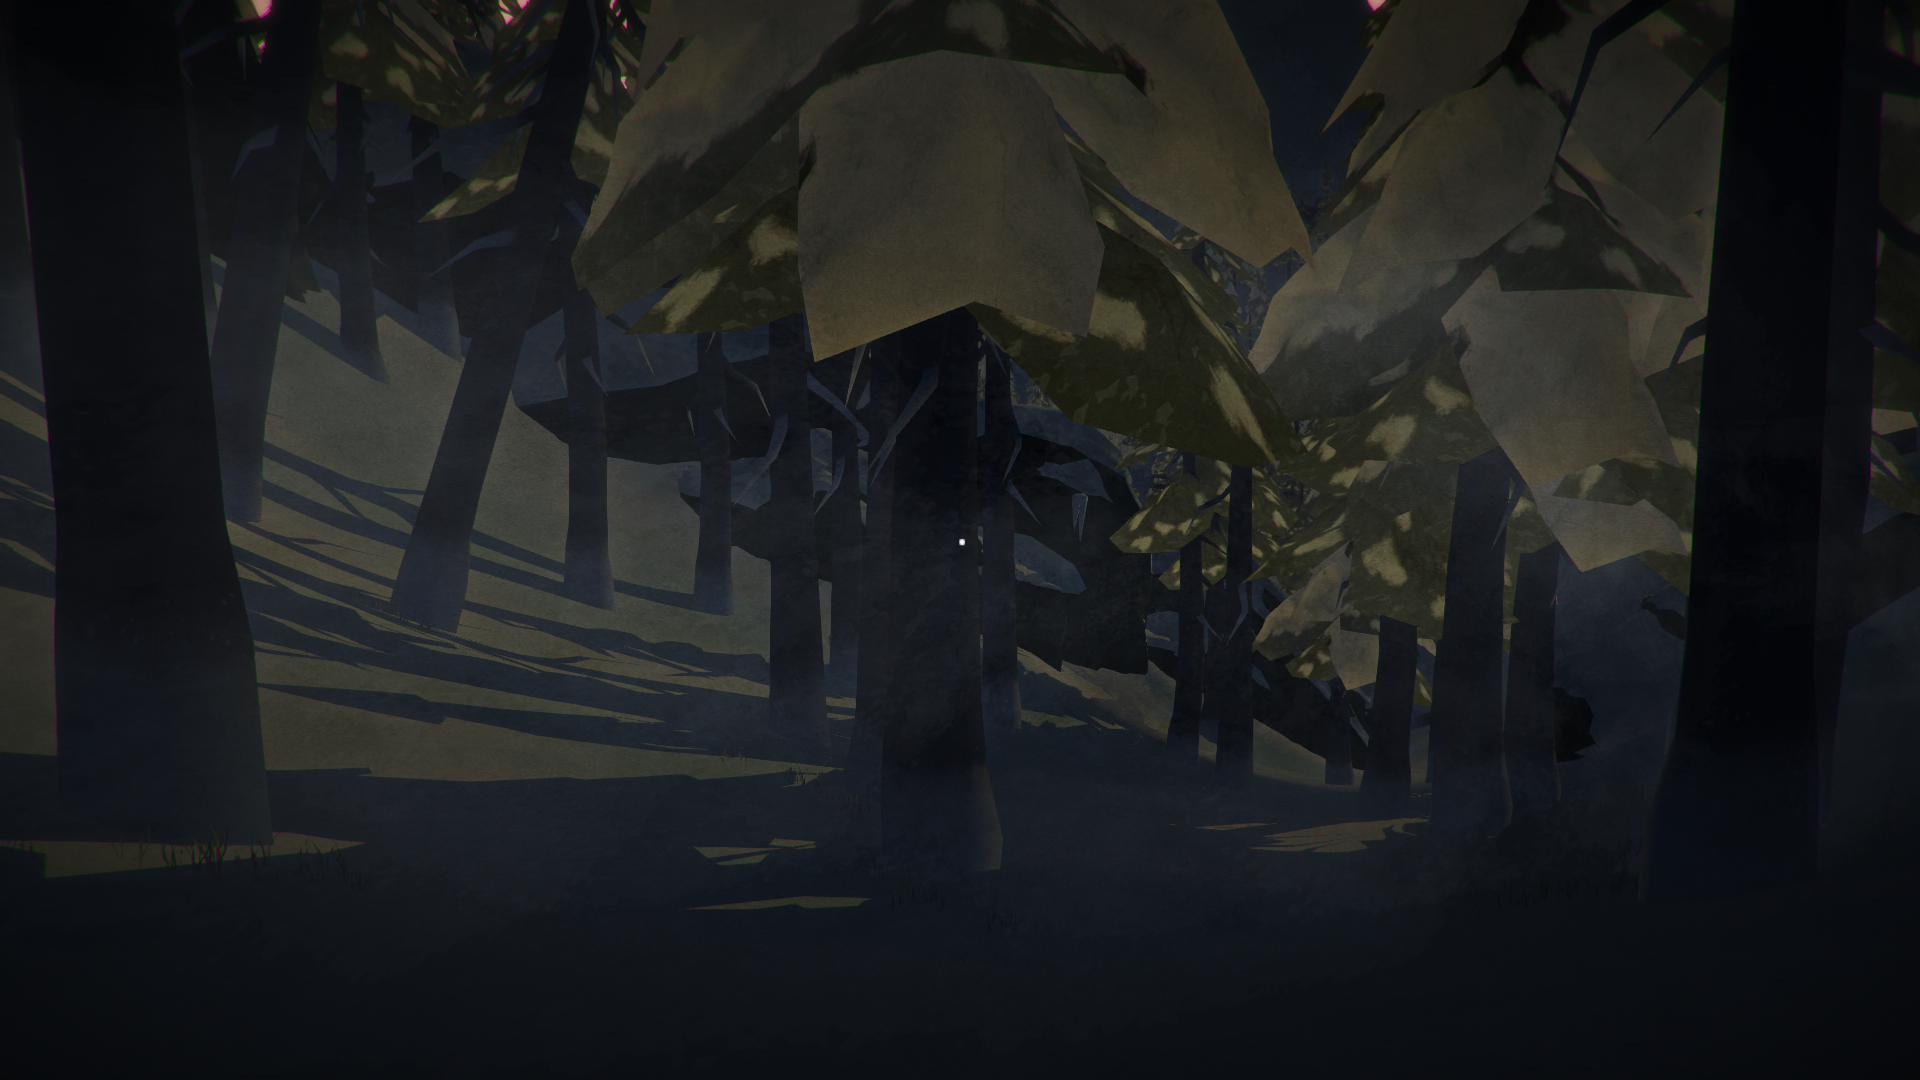 Unforgiving sophisticated and vast Three deaths in The Long Dark